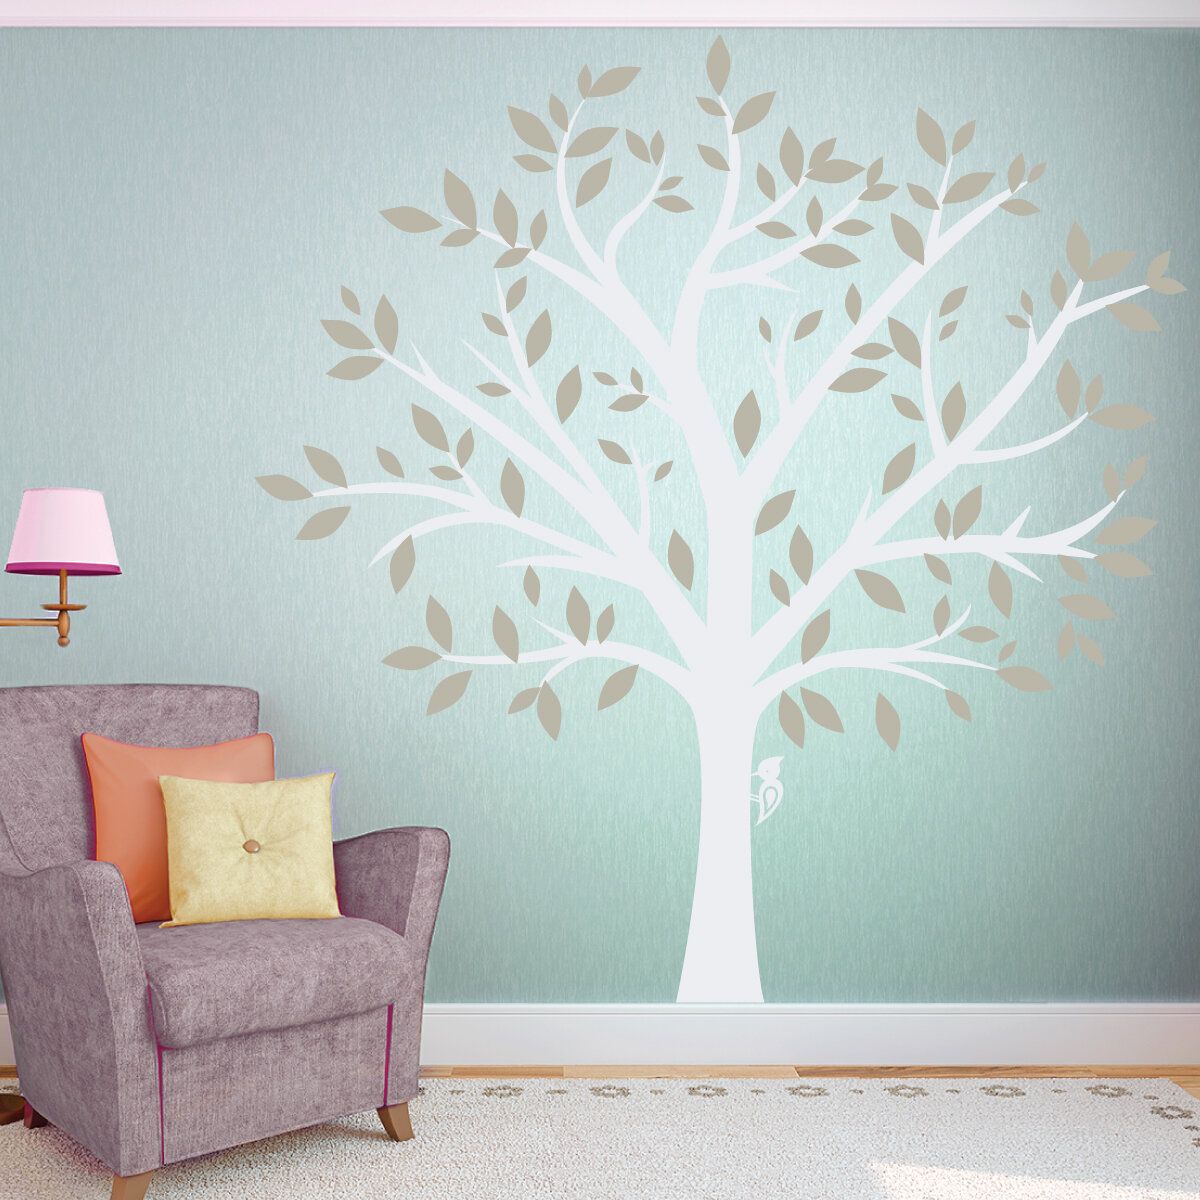 Captivating Wallums Wall Decor Large Family Tree Wall Decal. OUR SKU# WWDR1019 | MPN:  Nature Large Family Tree 84_BK_BK